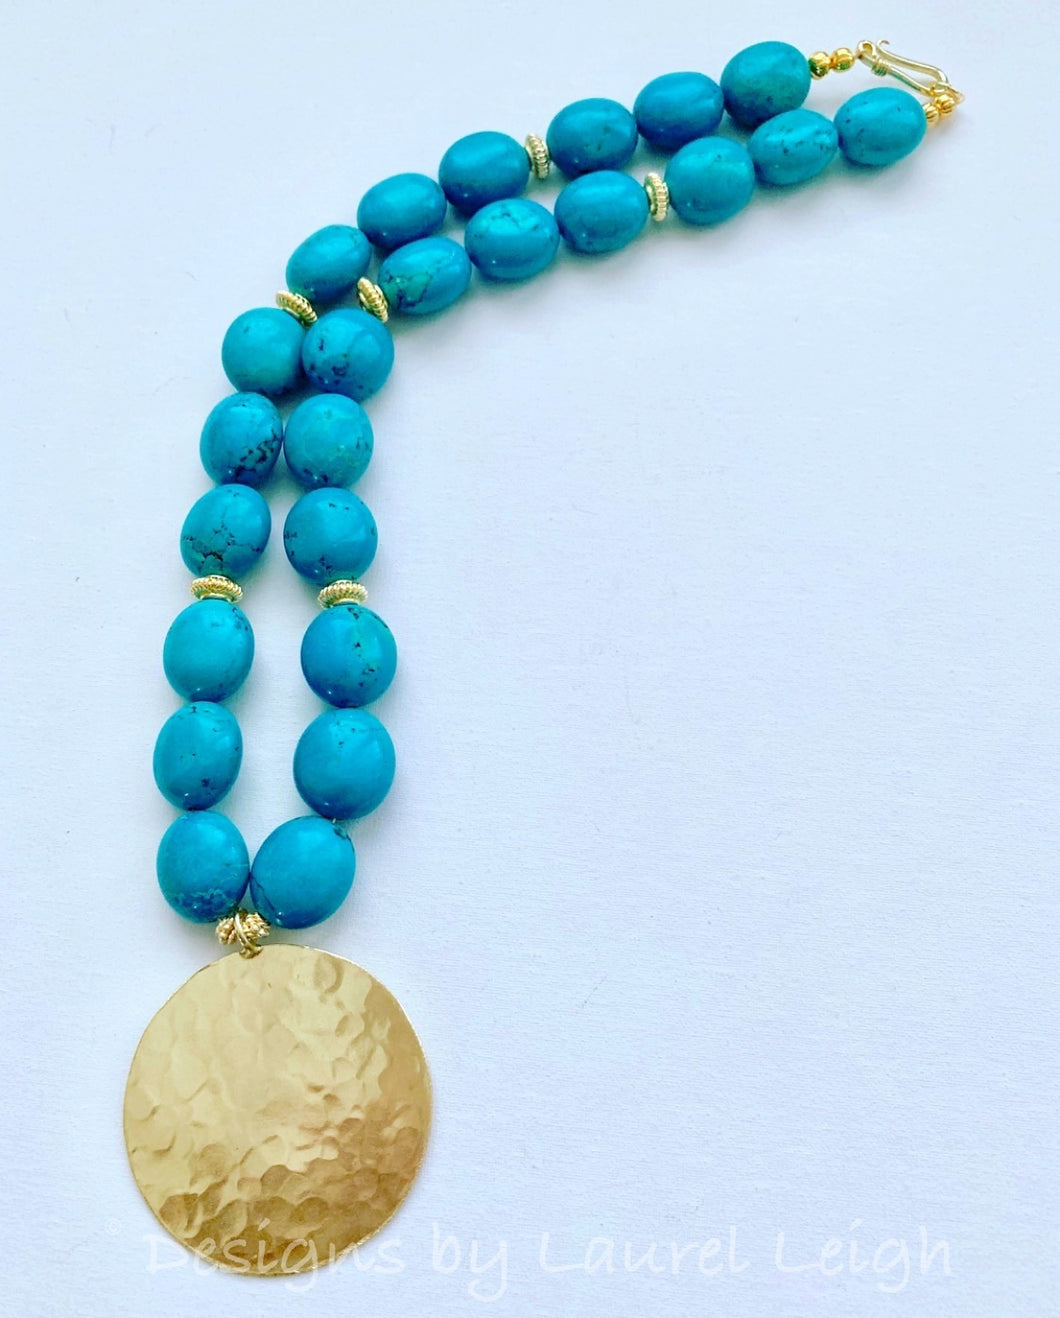 Turquoise & Gold Pendant Statement Necklace - Ginger jar